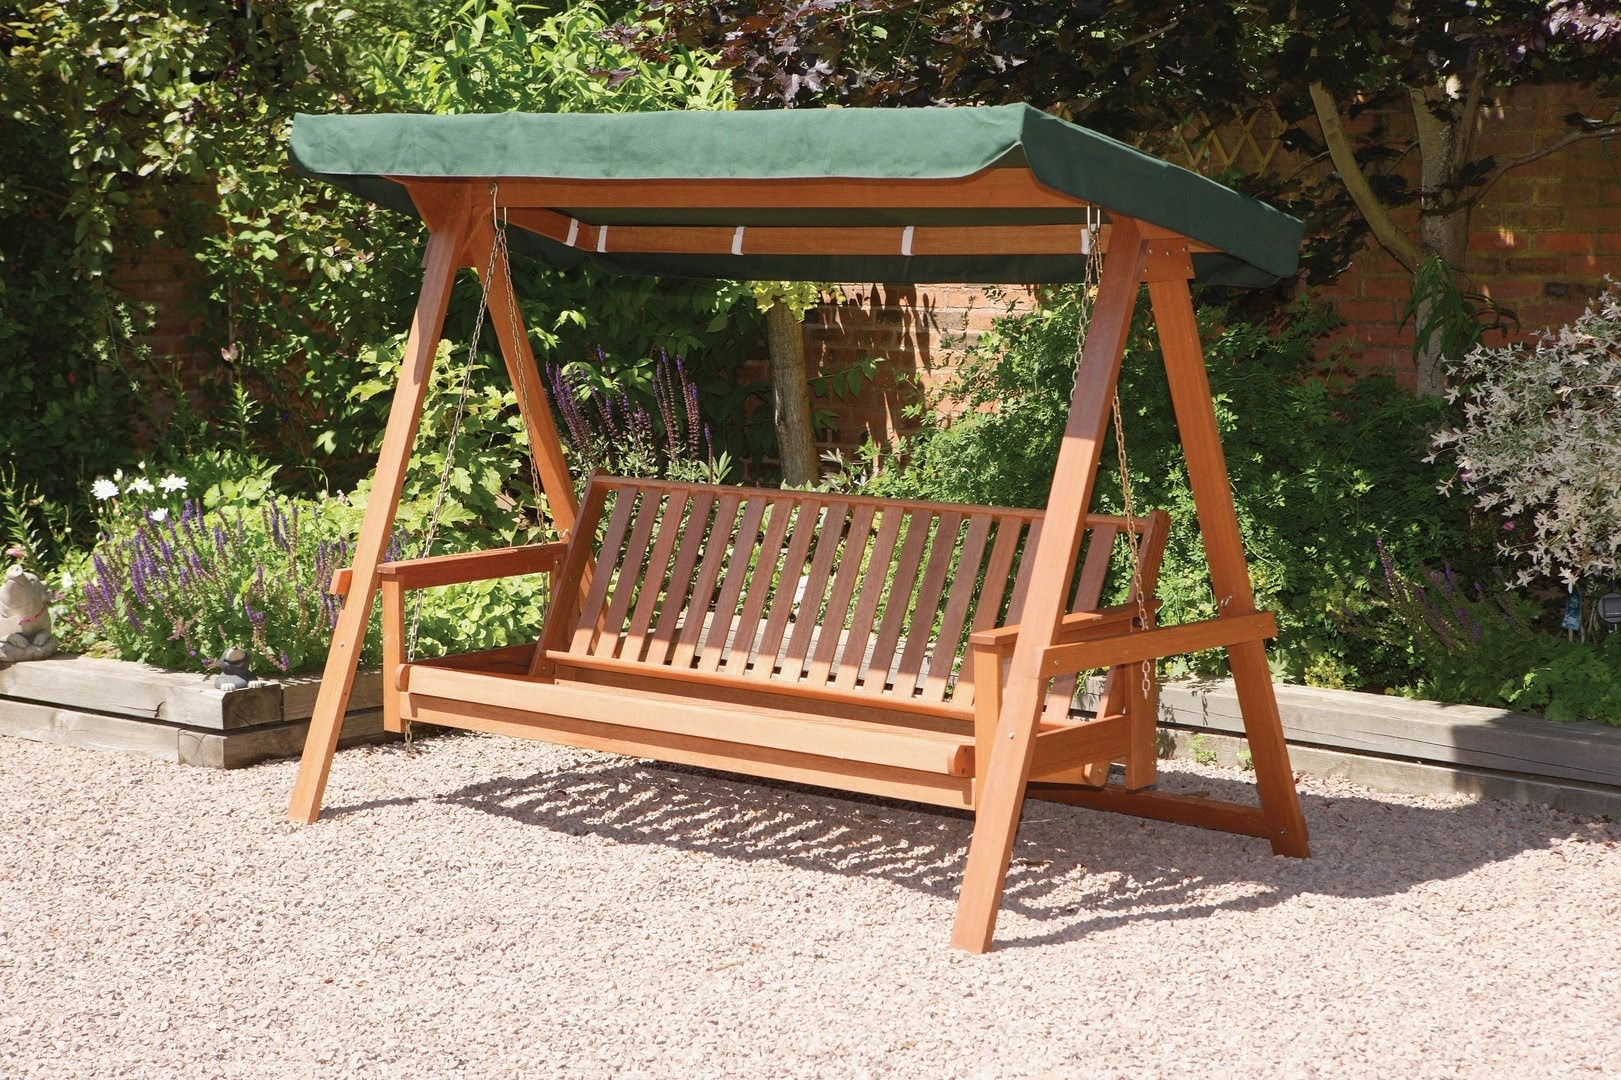 Image of: Garden Swing Chair Garden Swing Chair Accessories Youtube Throughout Wooden Garden Swing Seats Outdoor Furniture Fun Wooden Garden Swing Seats Outdoor Furniture